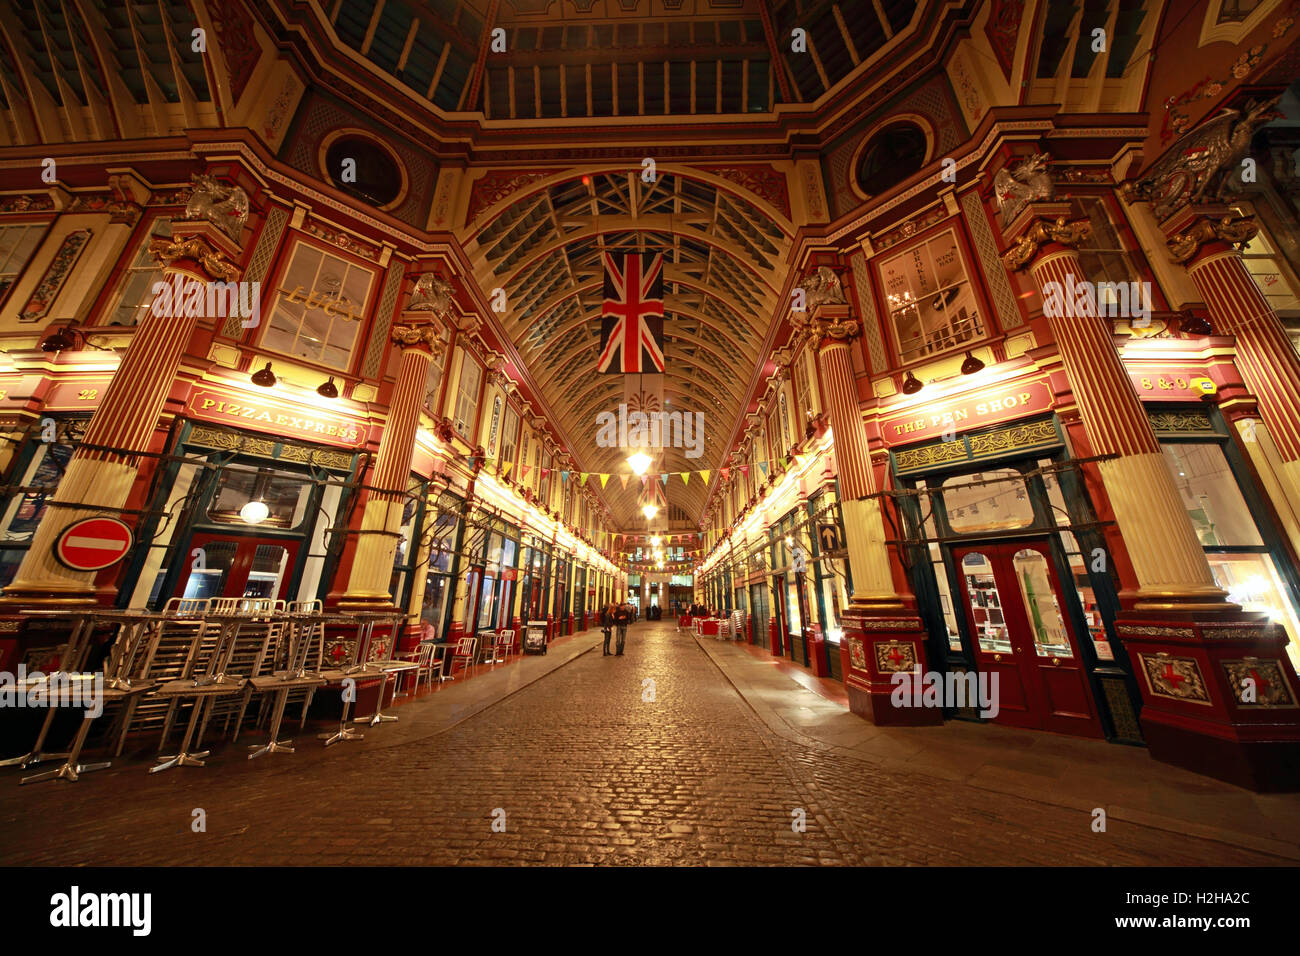 Evening,nightlife,dusk,covered,historic,pano,landmark,tourist,tourism,site,financial,district,area,bank,banking,pedestrian,passageway,passages,vendors,cheesemongers,butchers,florists,bar,pub,bars,pubs,ornate,roof,glass,cobbled,cobbles,attraction,Grade,II,Sir Horace Jones,Tourist Attraction,GoTonySmith,@HotpixUK,Tony,Smith,UK,GB,Great,Britain,United,Kingdom,English,British,England,color,colour,panorama,union,flag,jack,Buy Pictures of,Buy Images Of,Images of,Stock Images,Tony Smith,United Kingdom,Great Britain,British Isles,UnionJack,Union Jack